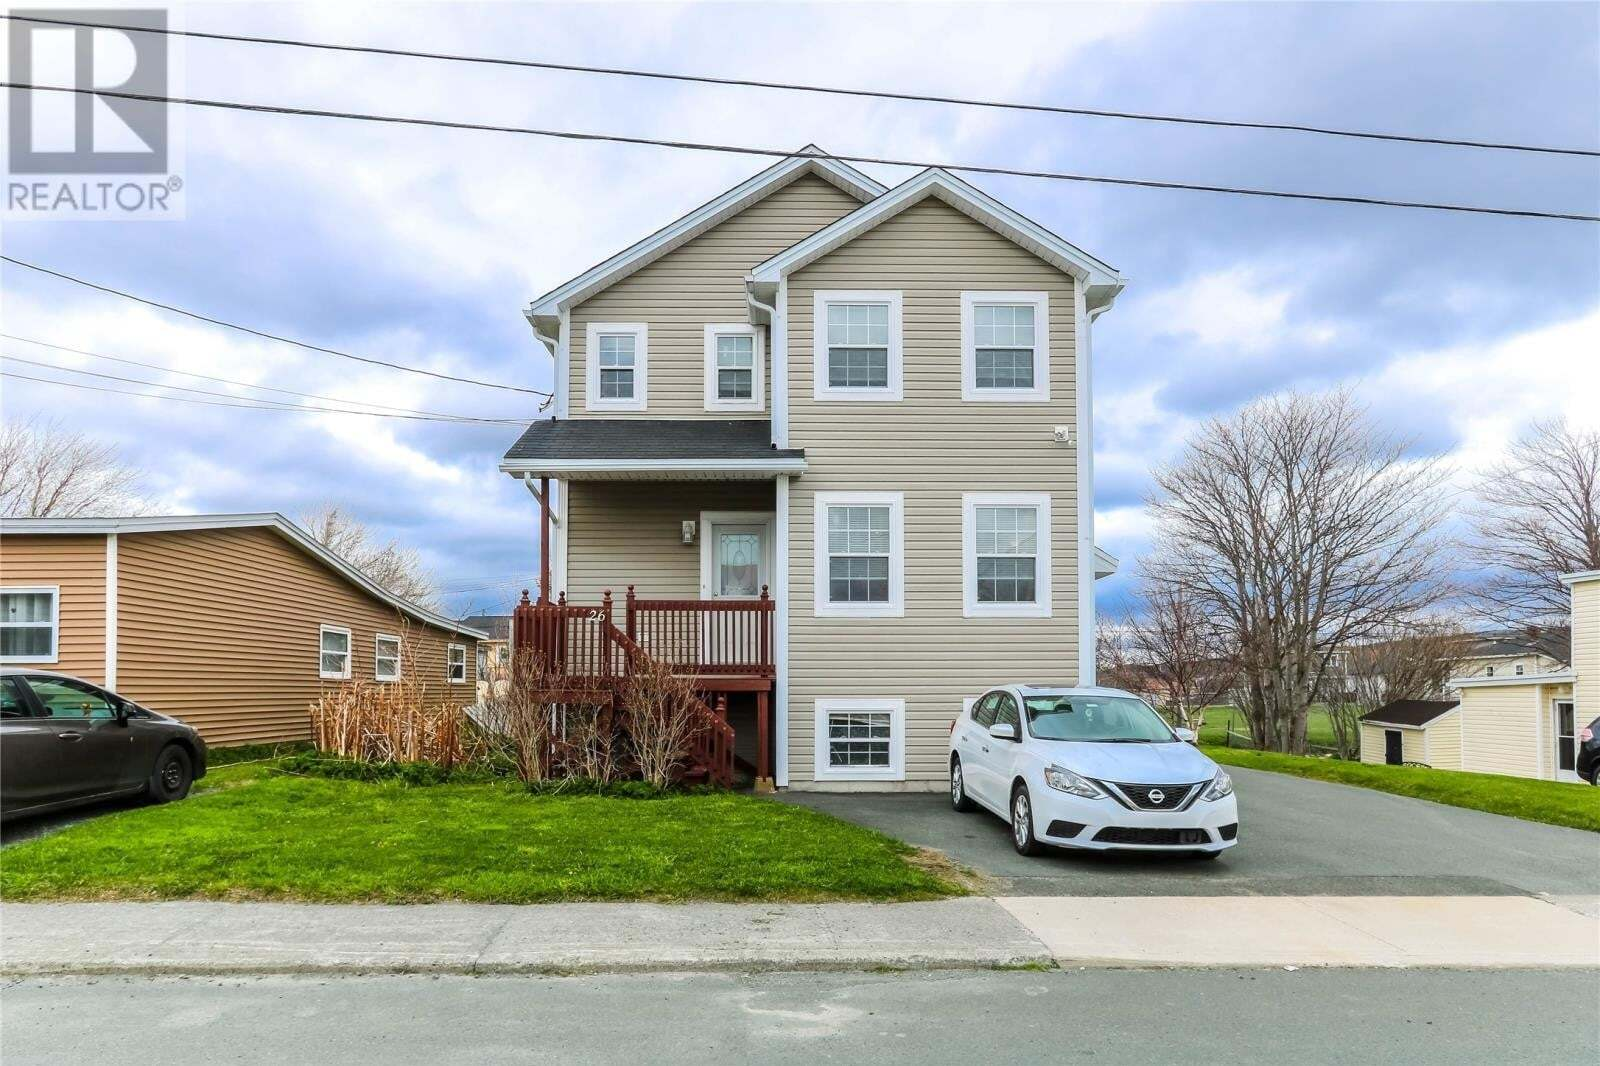 House for sale at 26 Pearce Ave St. John's Newfoundland - MLS: 1214263